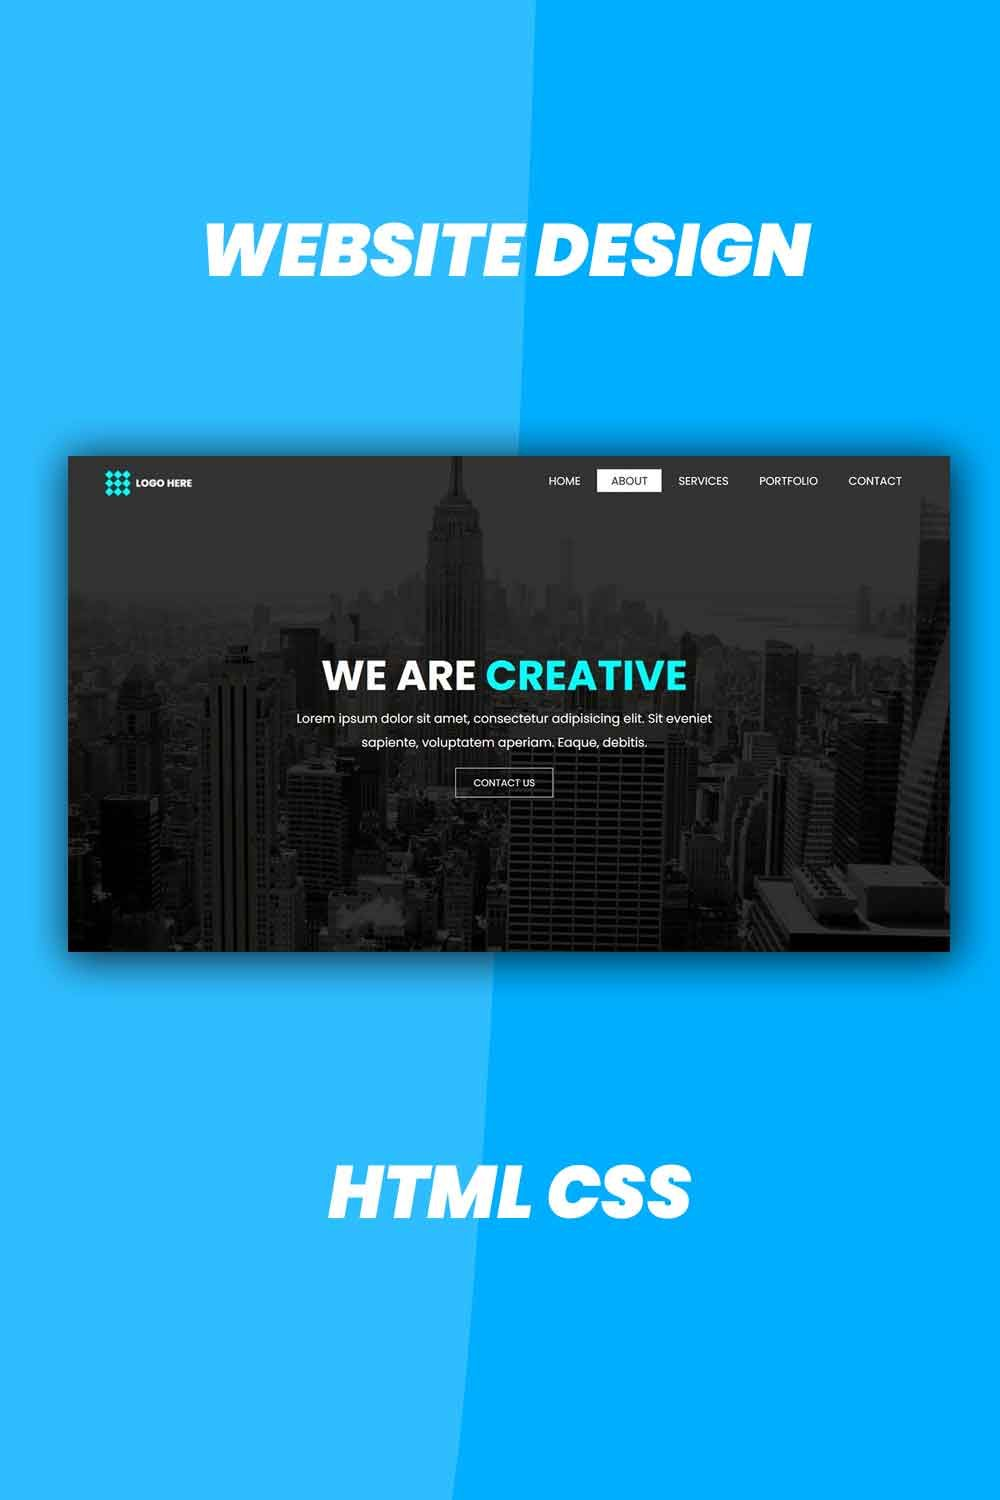 How To Create A Website Homepage Using Html Css In 2021 Homepage Design Html Css Css